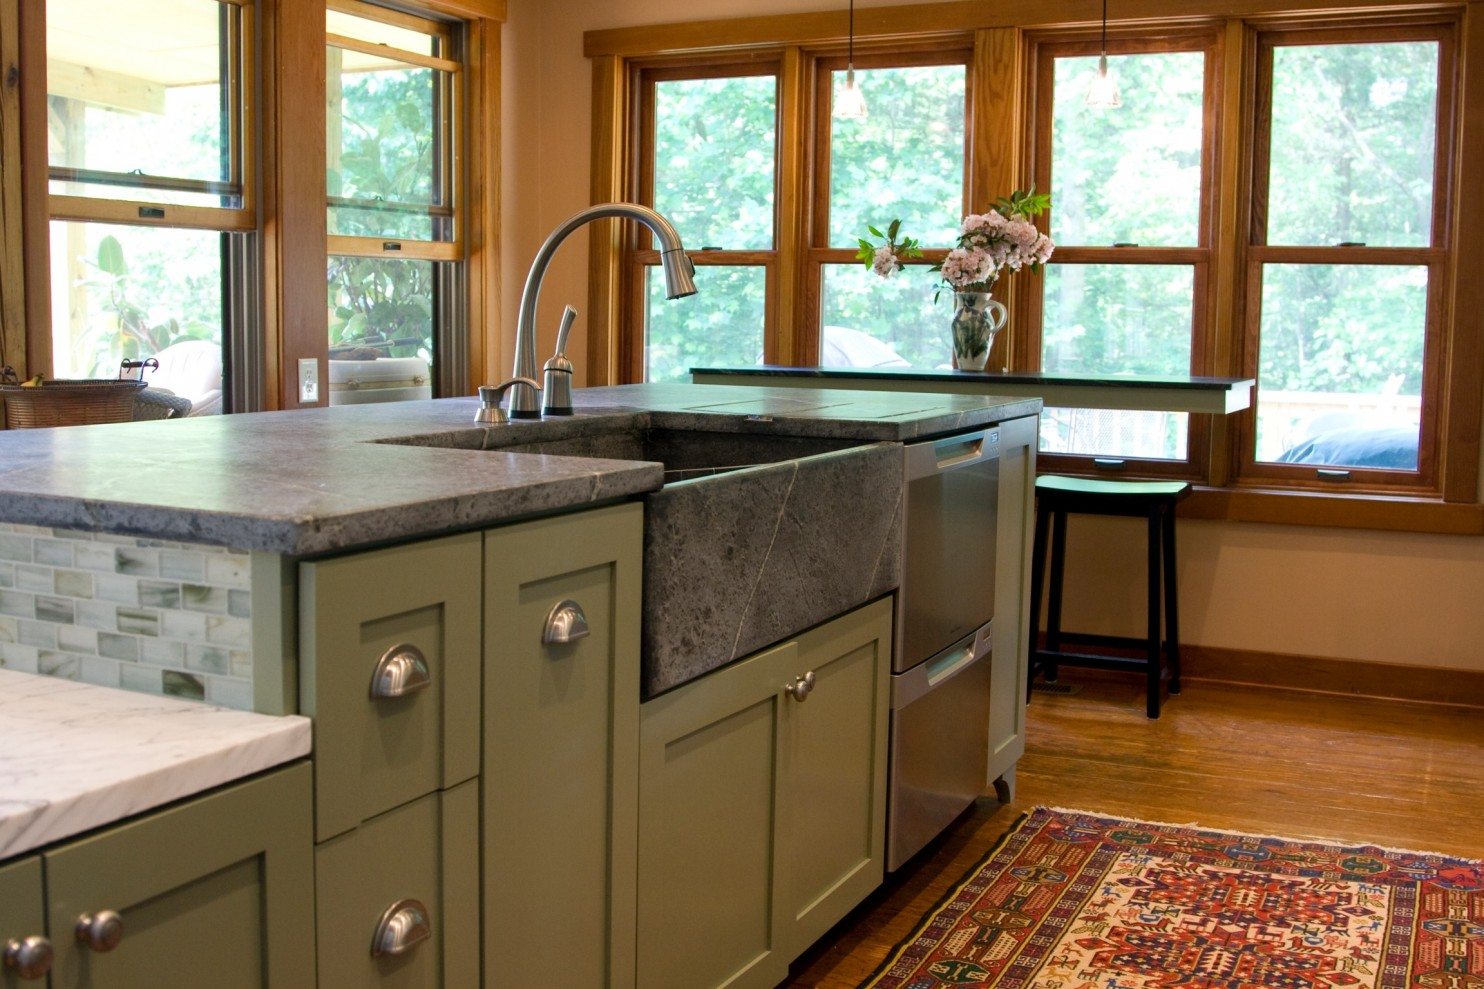 Best Place To Buy Countertops Soapstone Quality Stone Concepts Virginia Beach Best